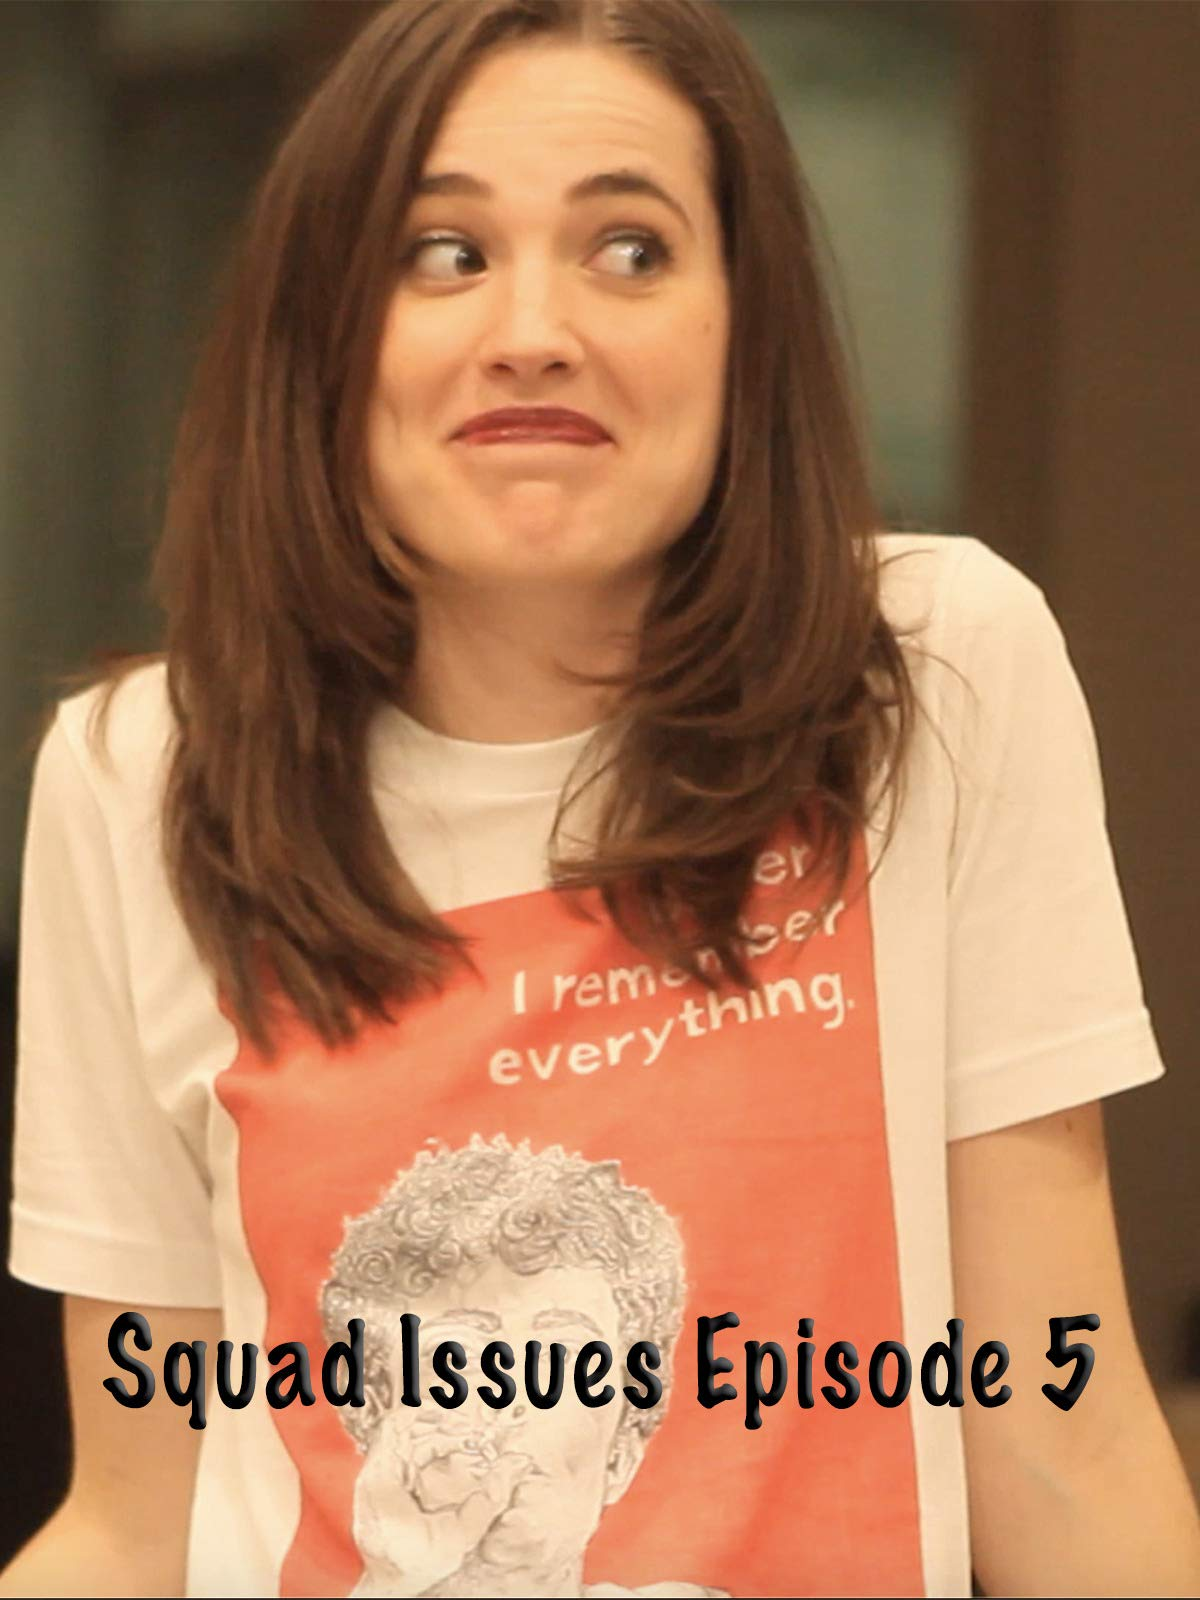 Clip: Squad Issues Episode 5